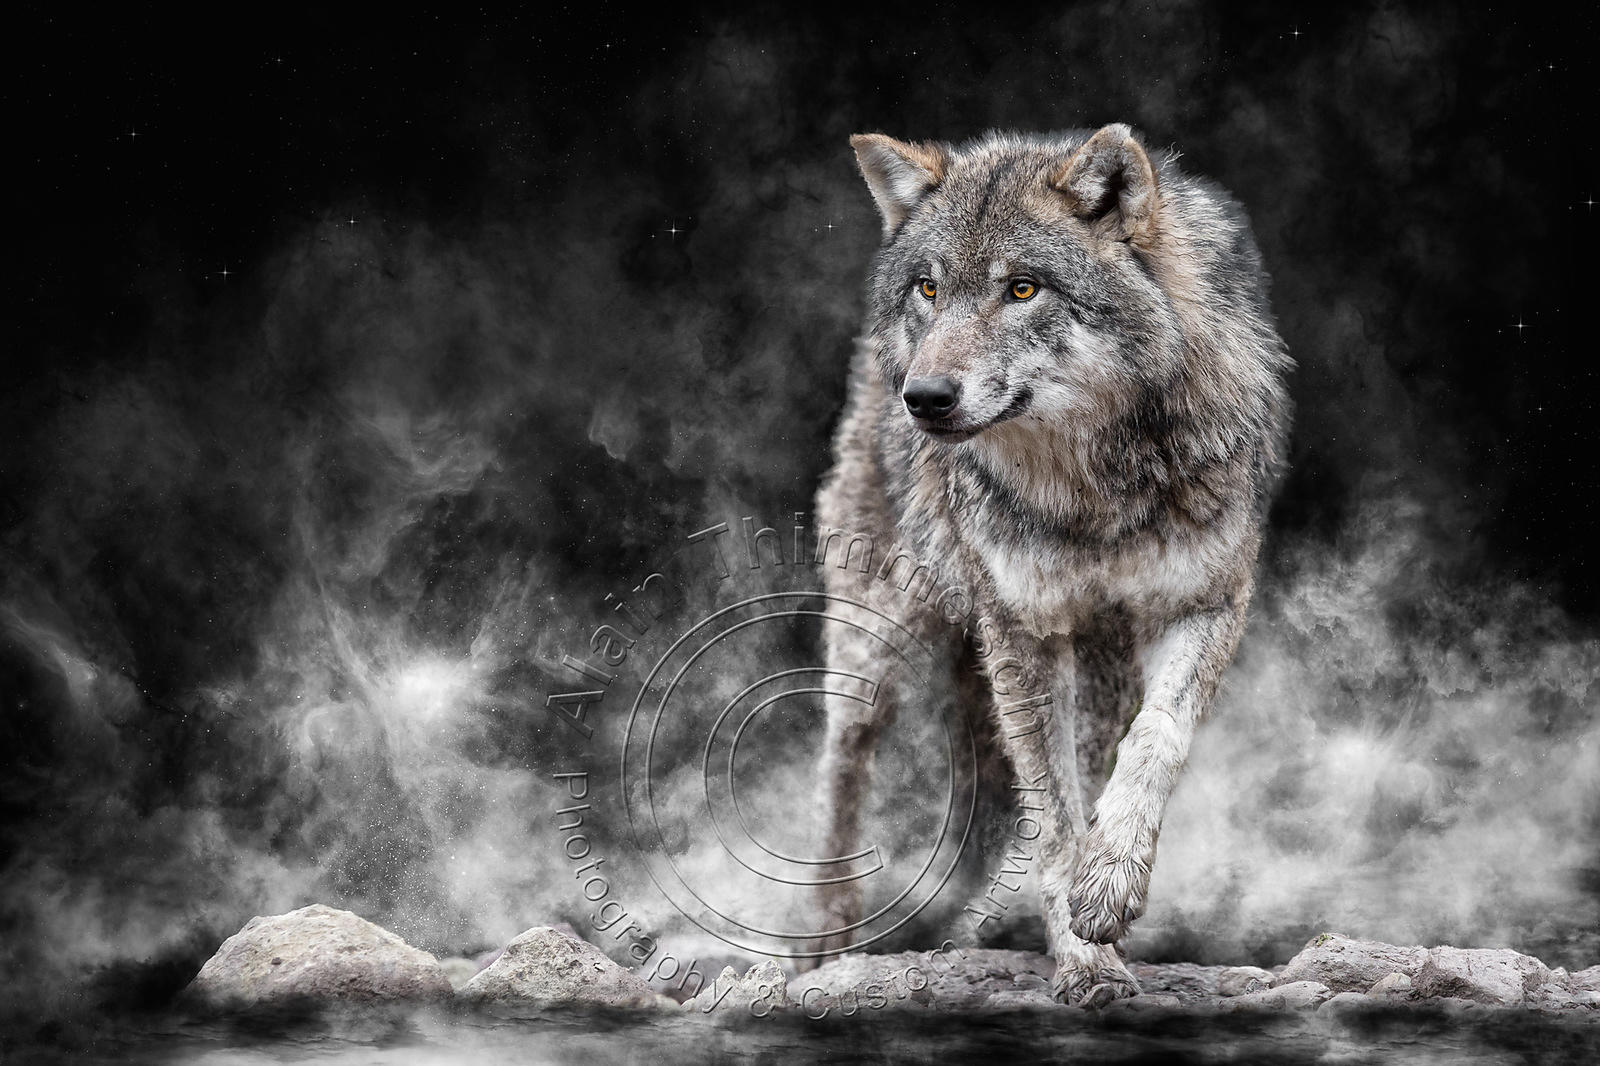 Art-Digital-Alain-Thimmesch-Loup-27